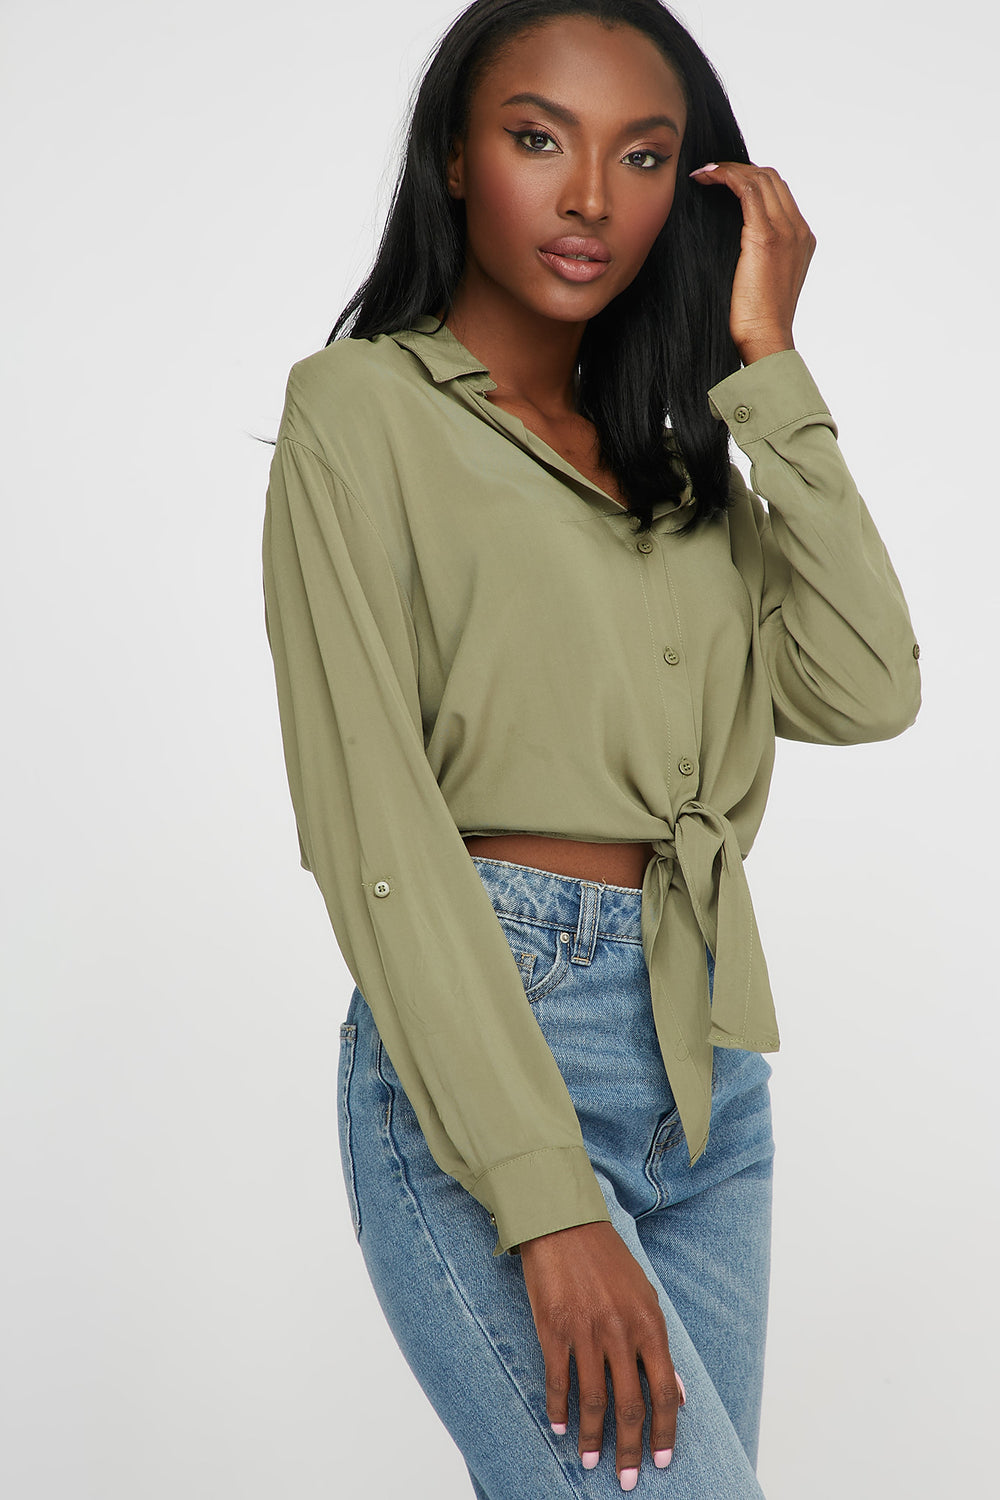 Front-Tie Button Up Long Sleeve Dark Green